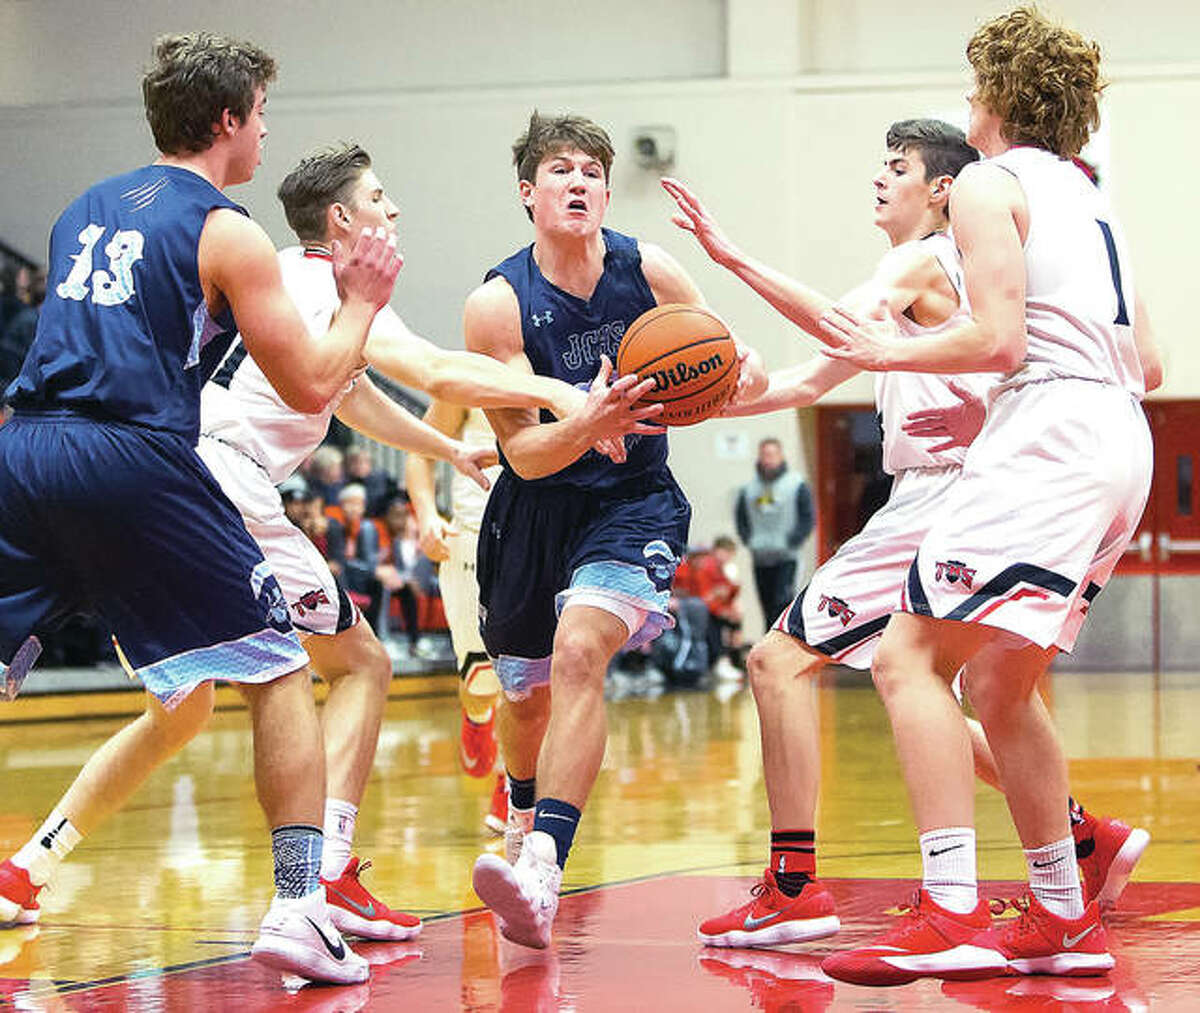 Jersey's Blake Wittman (middle) splits Triad's defense to drive the lane while teammate Lucas Ross (13) looks on during Friday night's Mississippi Valley Conference boys basketball game at Triad.